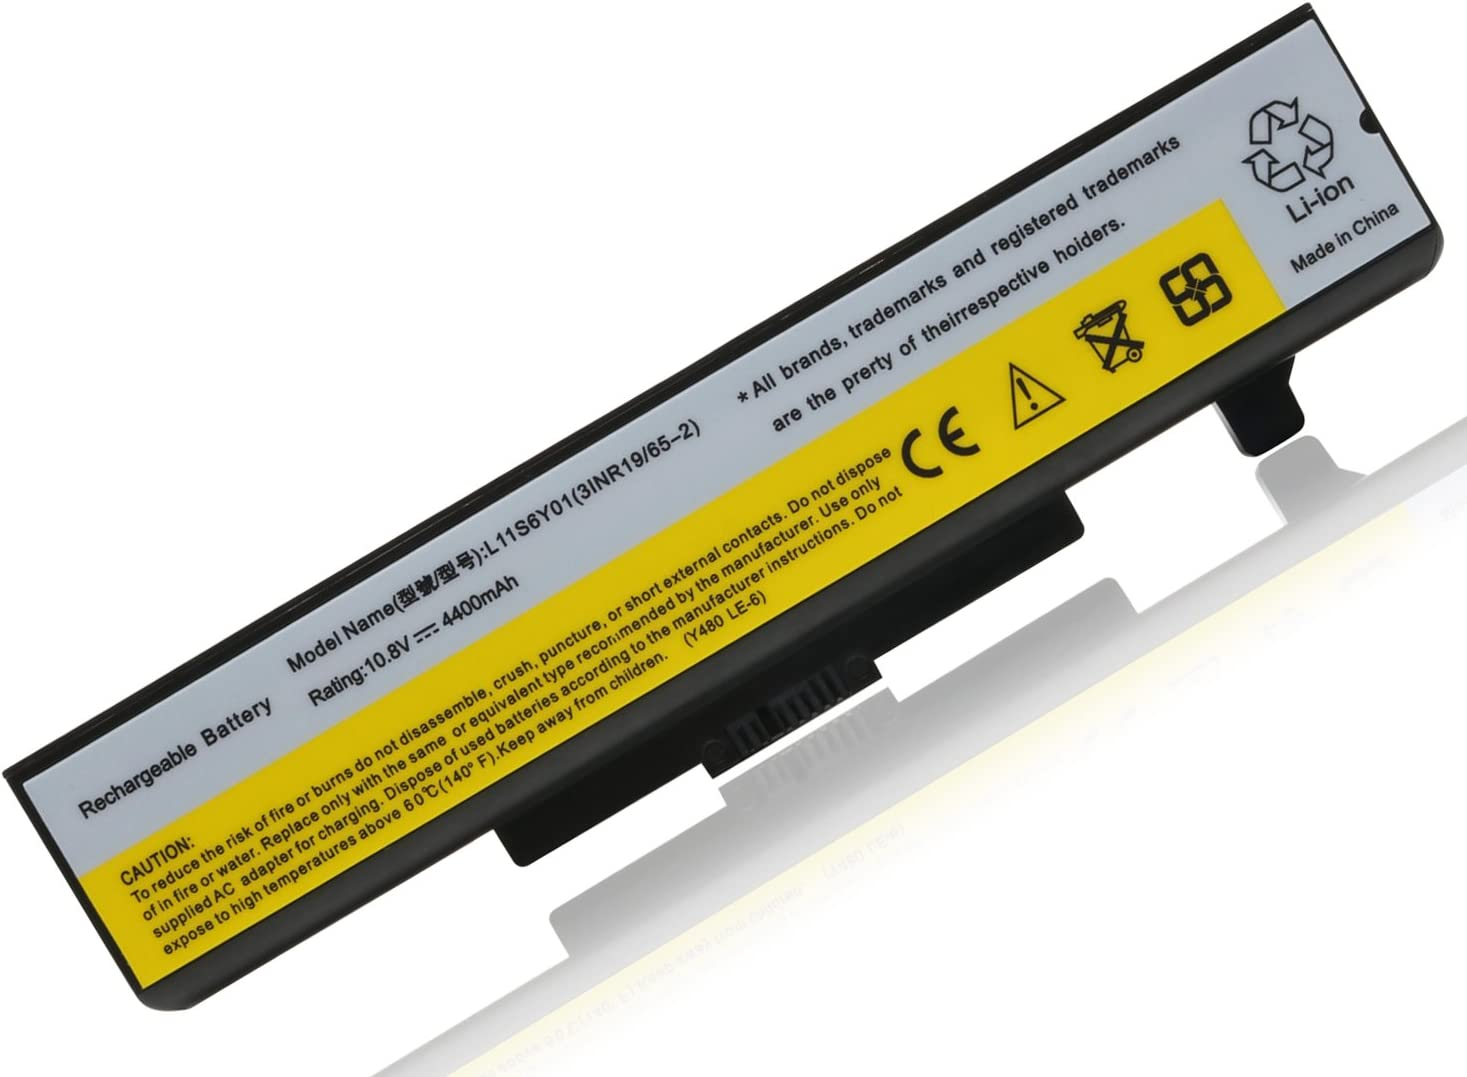 G480 G580 Z380 Z480 Z580 Z585 Replacement Laptop Battery for Lenovo IdeaPad Y480 Y580 Series Compatible P/N:L11S6Y01 L11L6Y01 45N1043